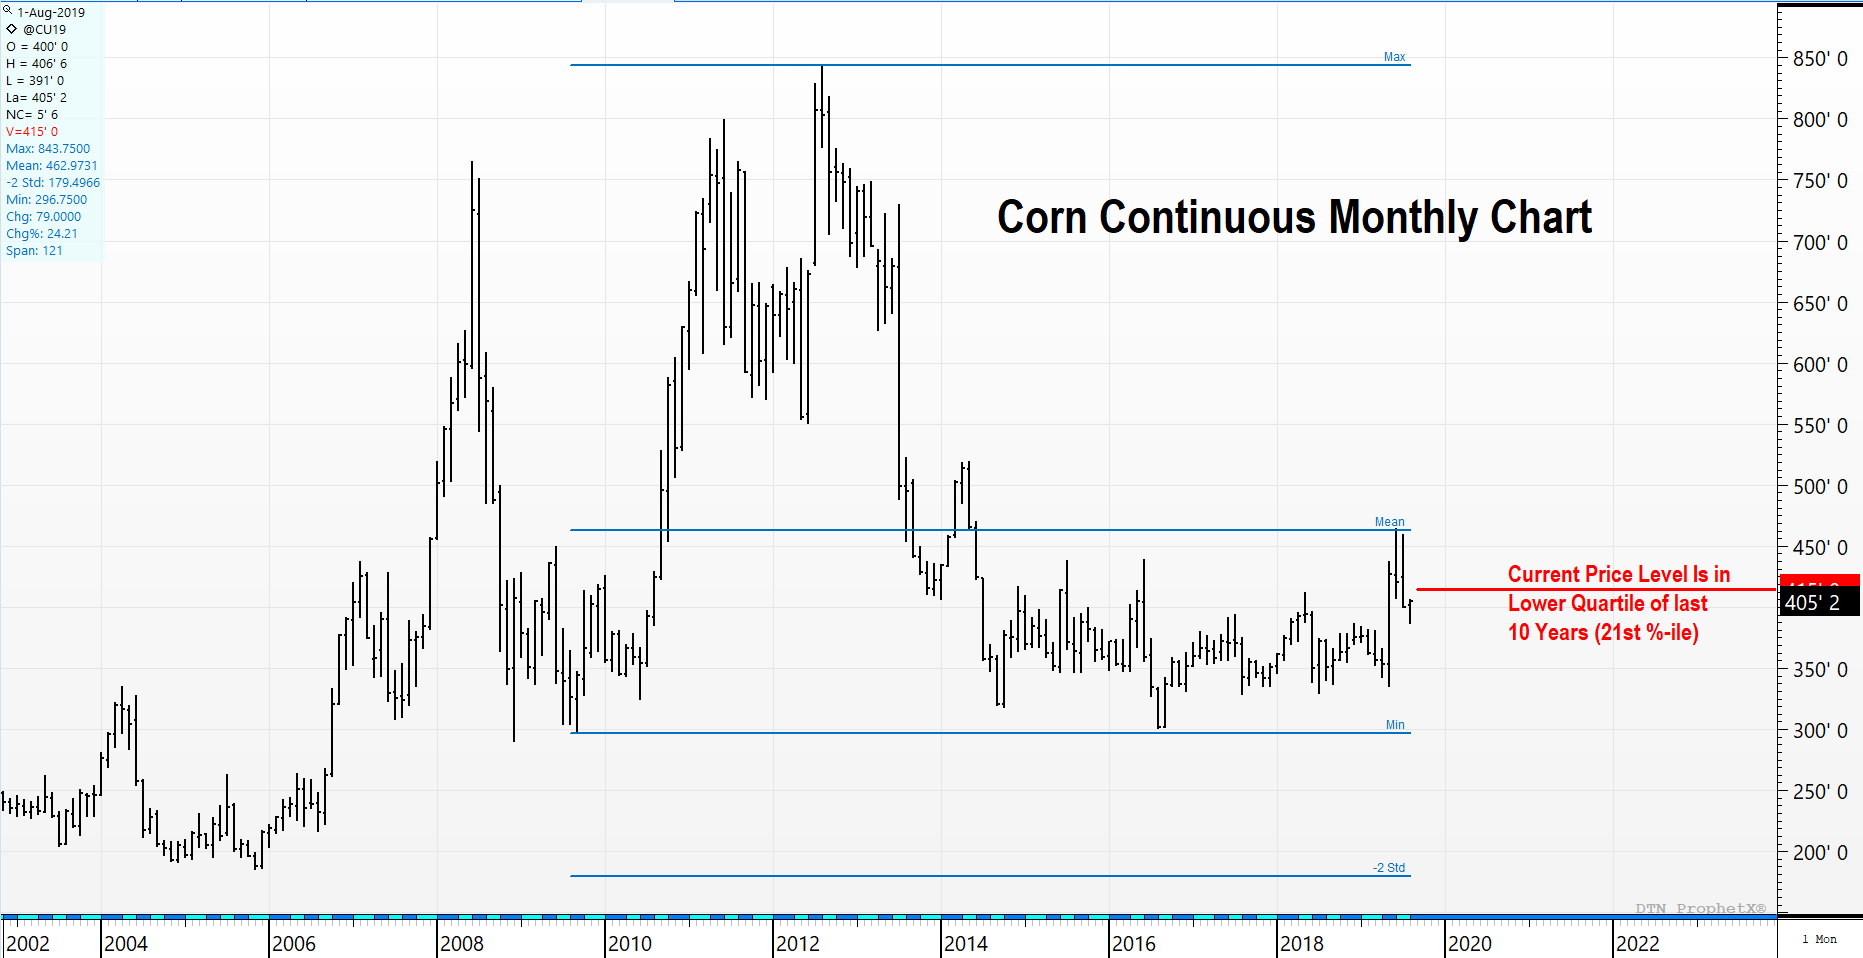 Corn Monthly Continuous Chart